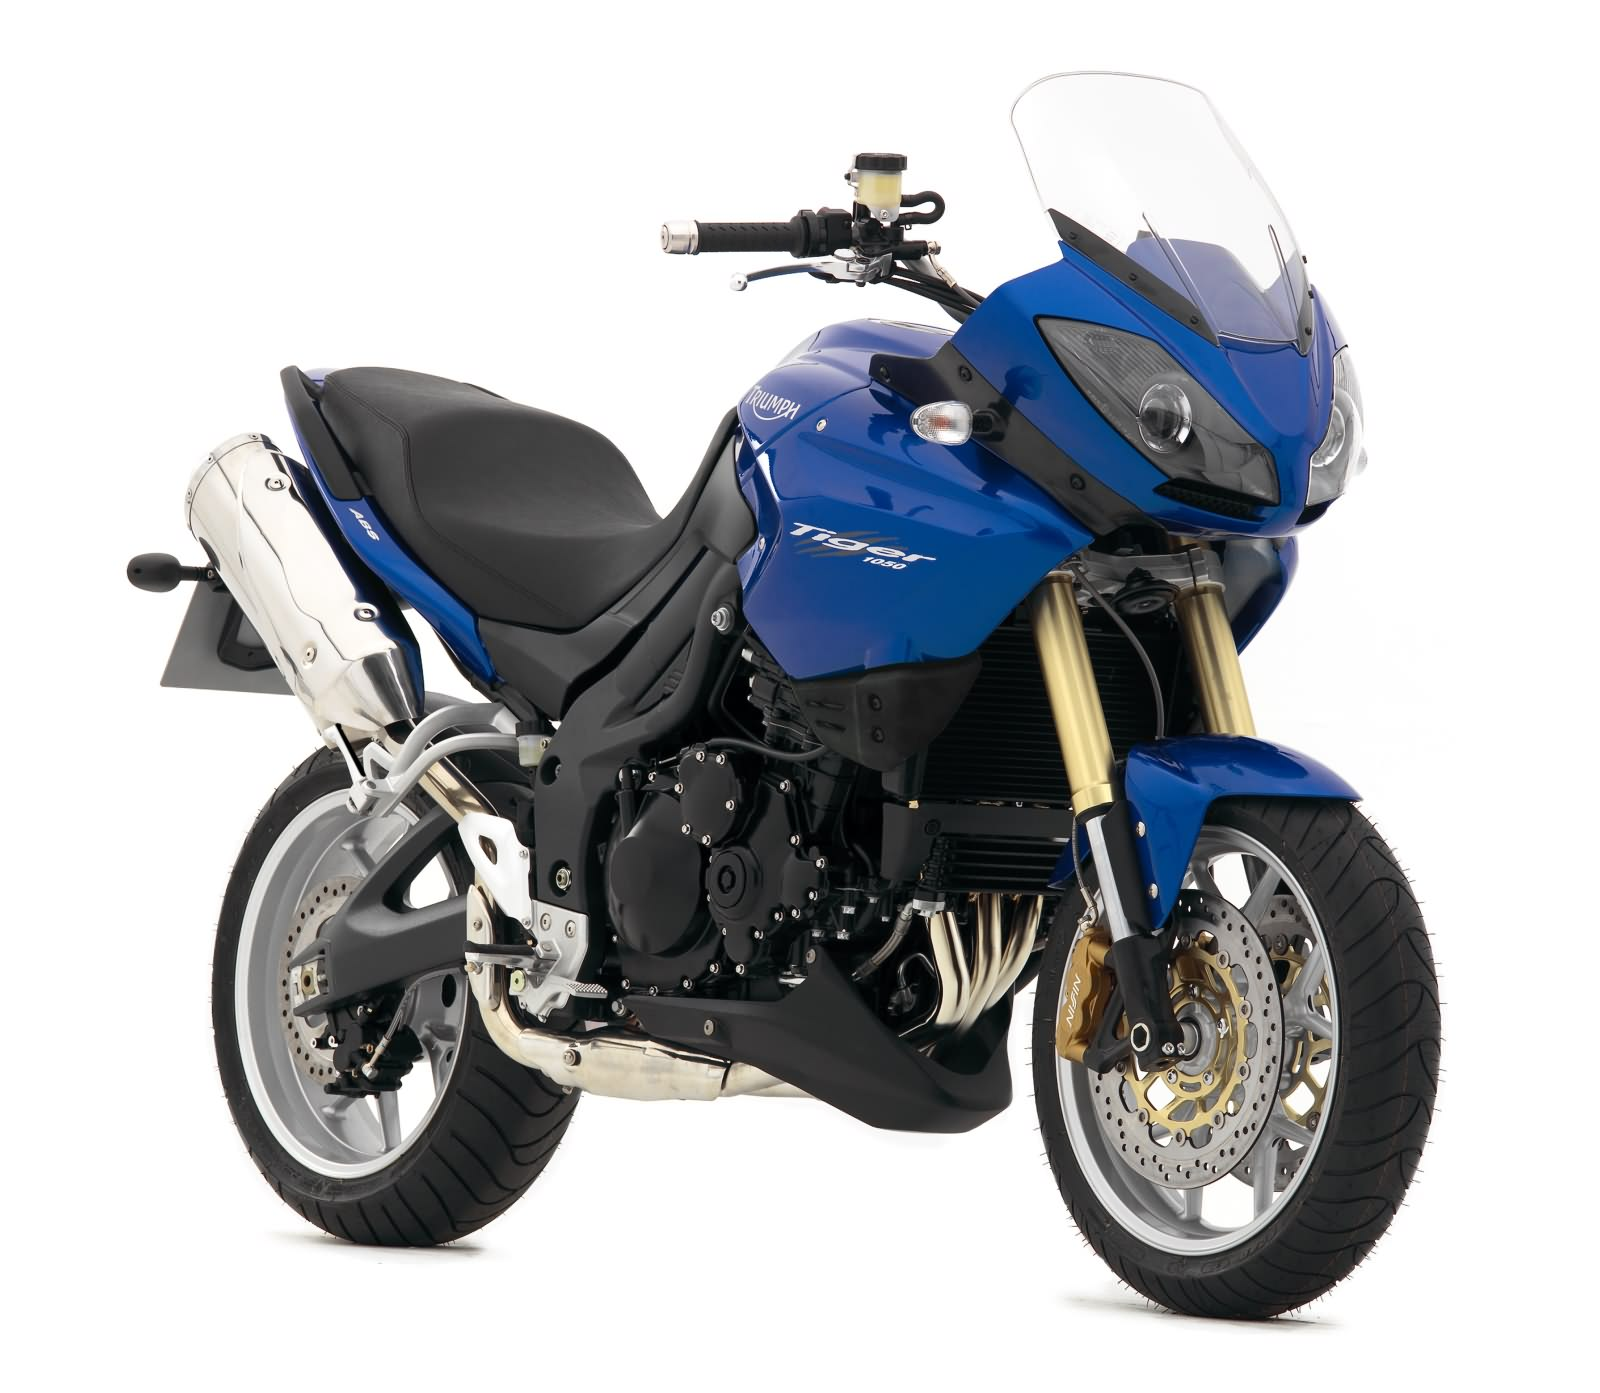 Triumph tiger photo - 1